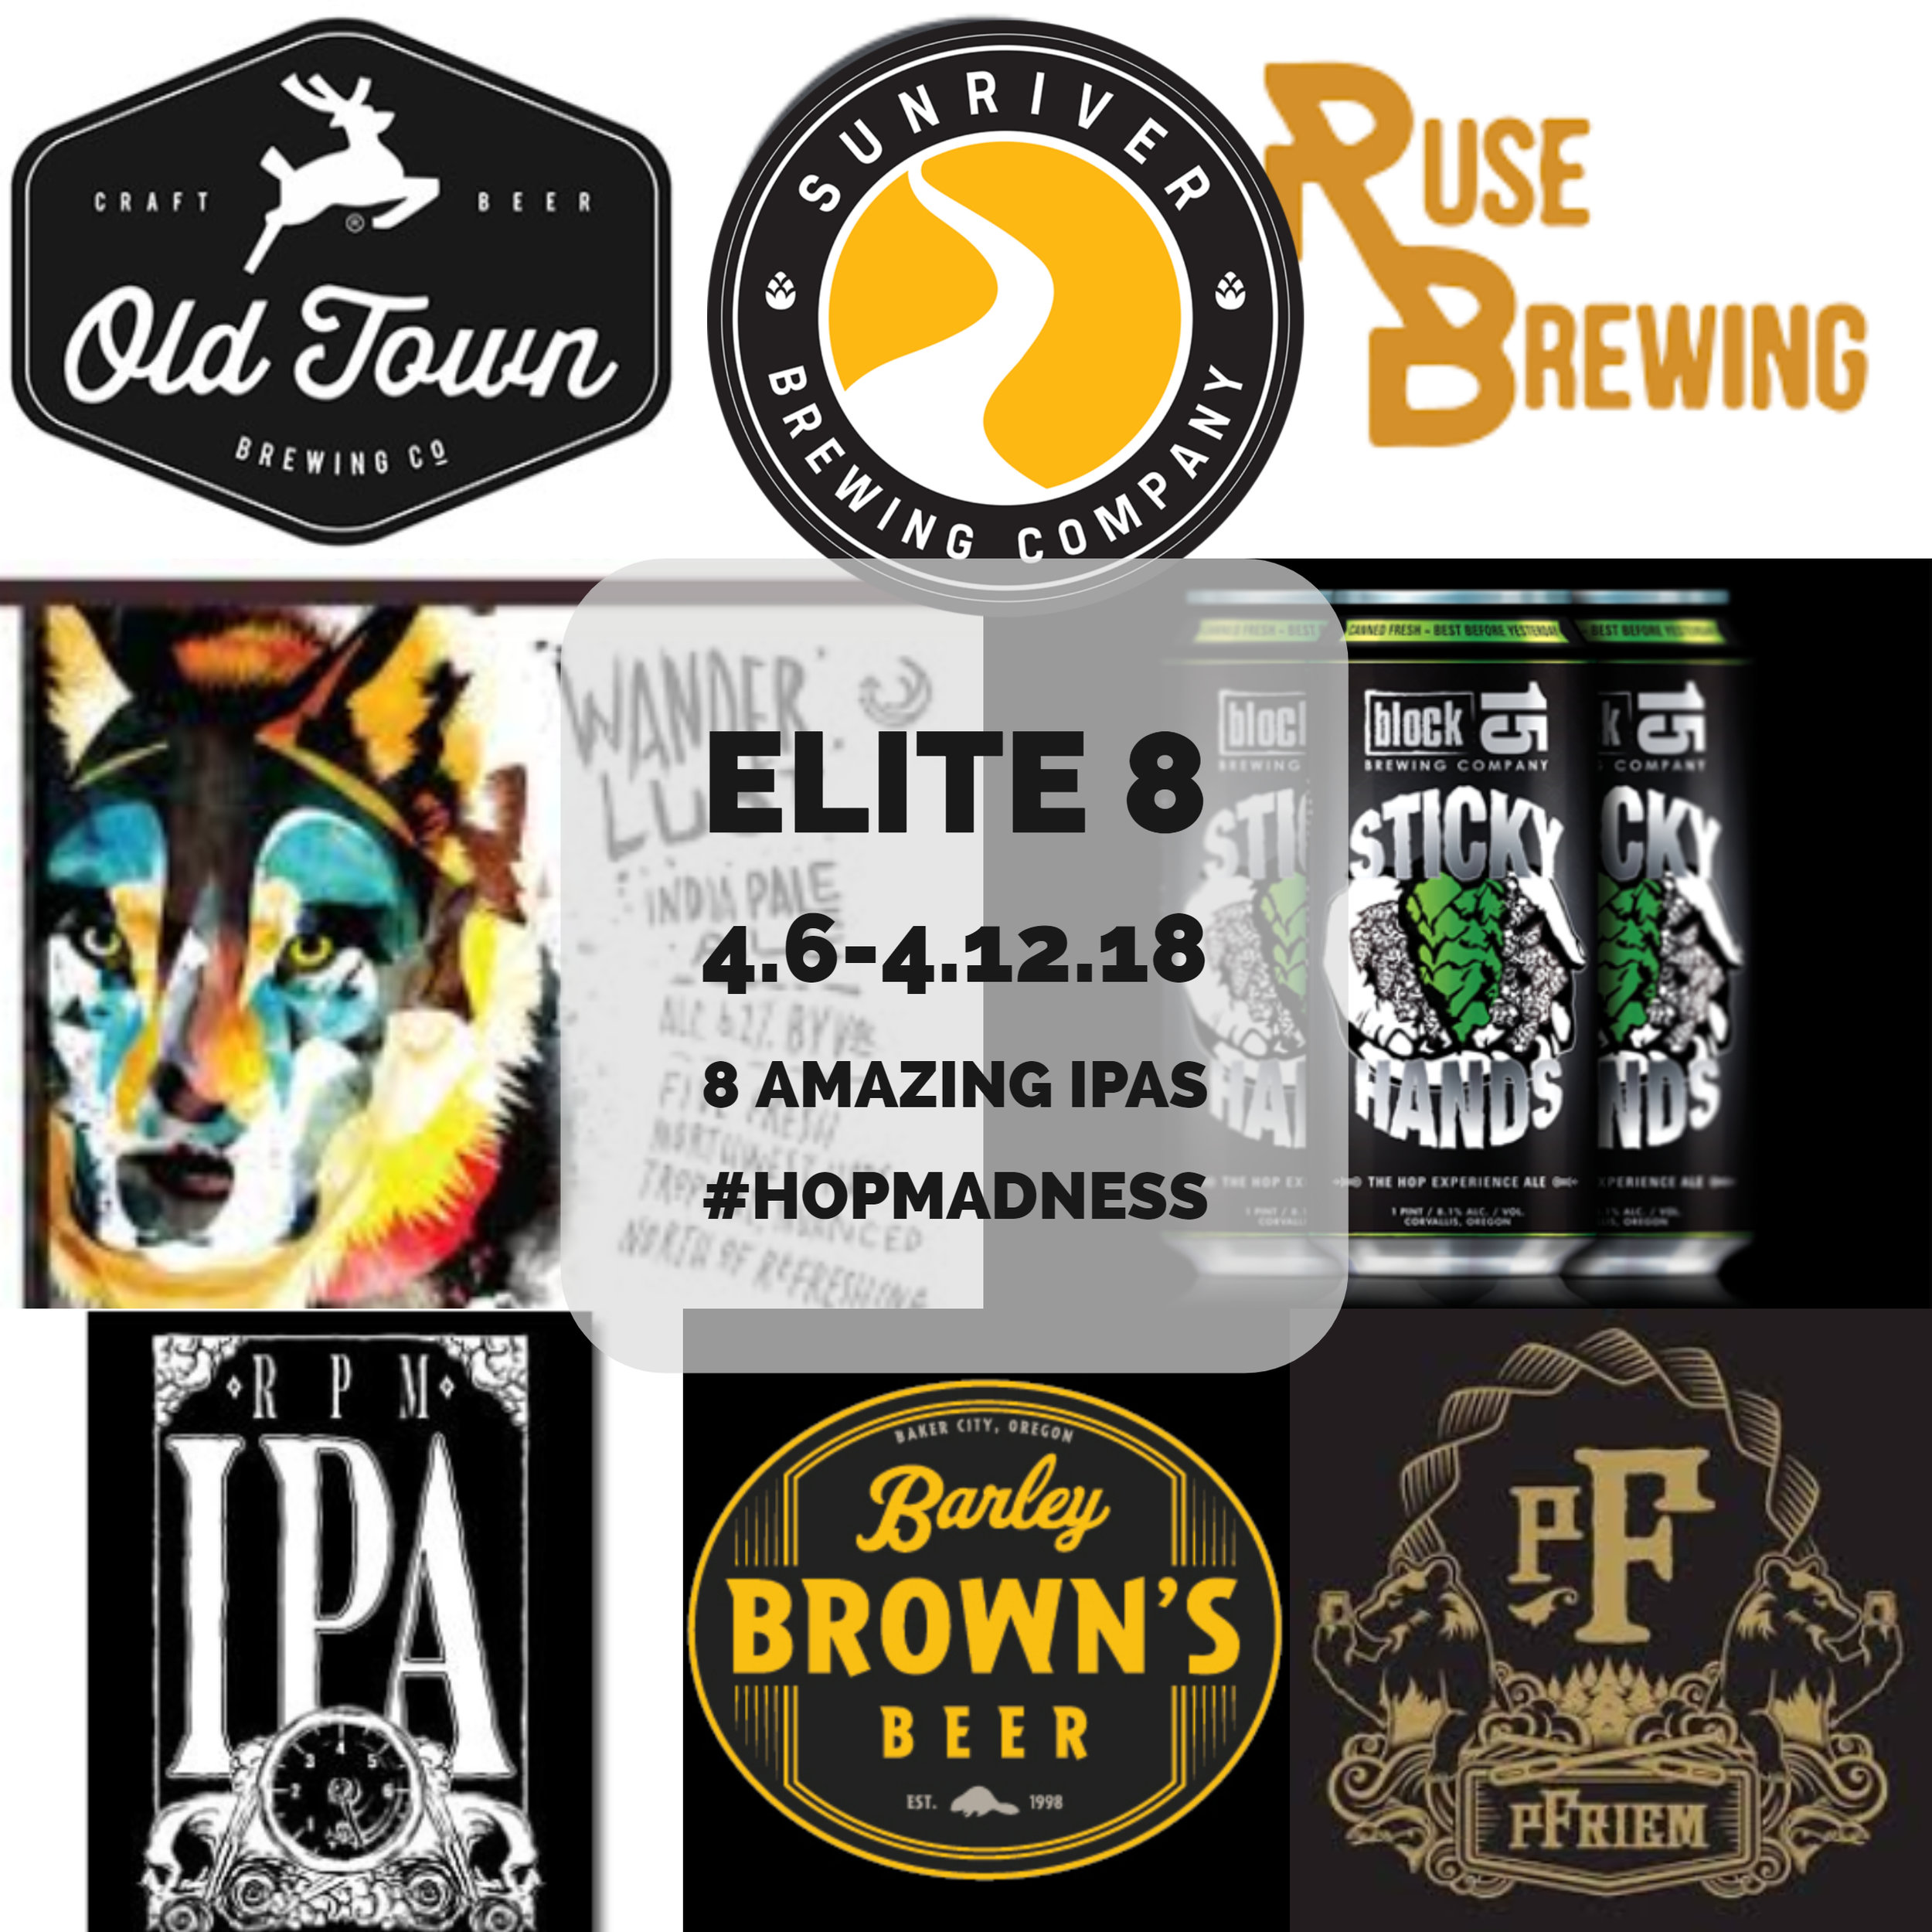 Stop by either location and for $10 enjoy samples of all 8 IPAs and get to vote on each match up.